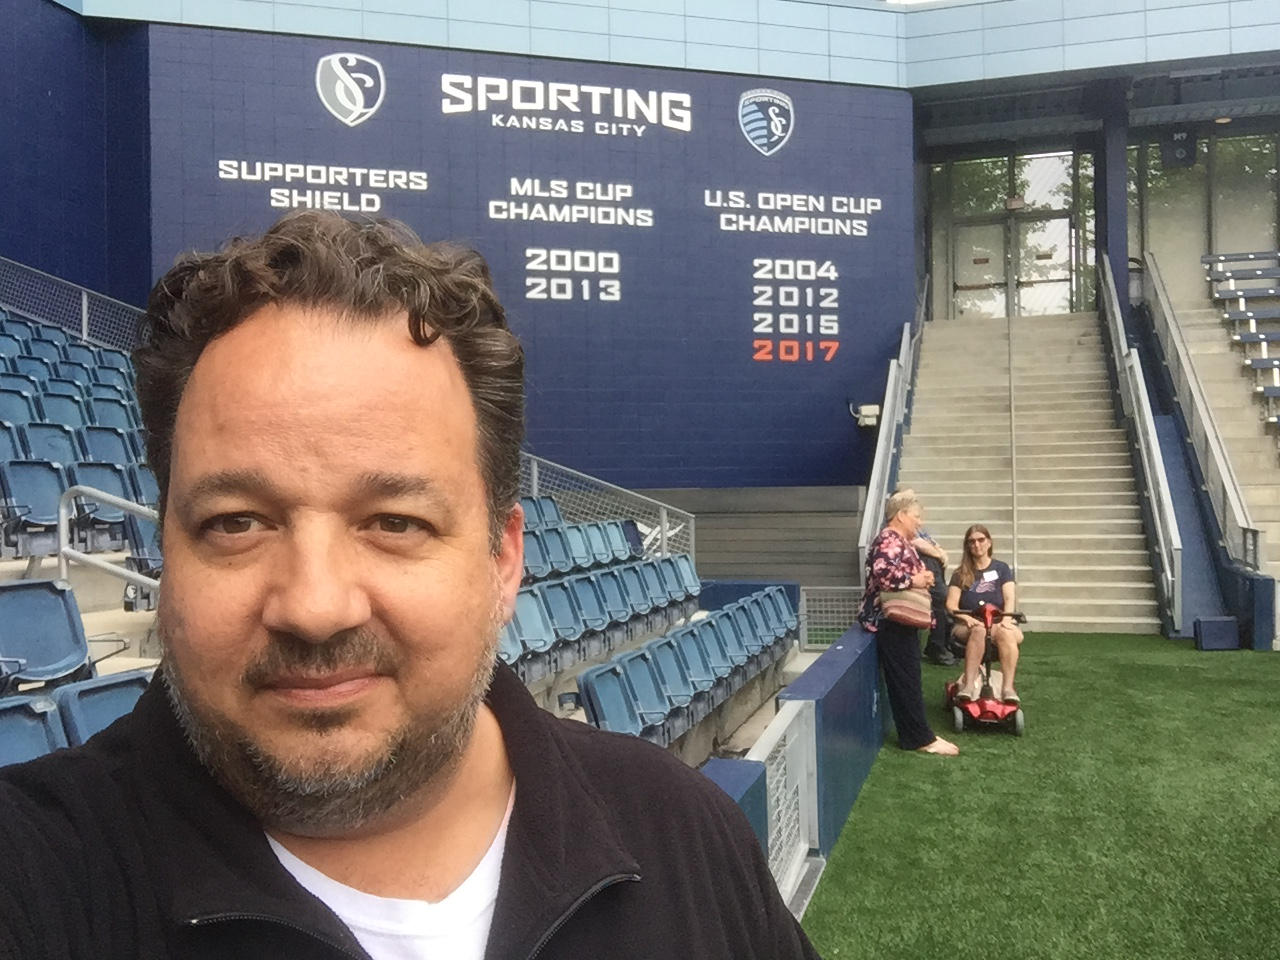 Sporting KC selfie (Photo by J. Schafer)